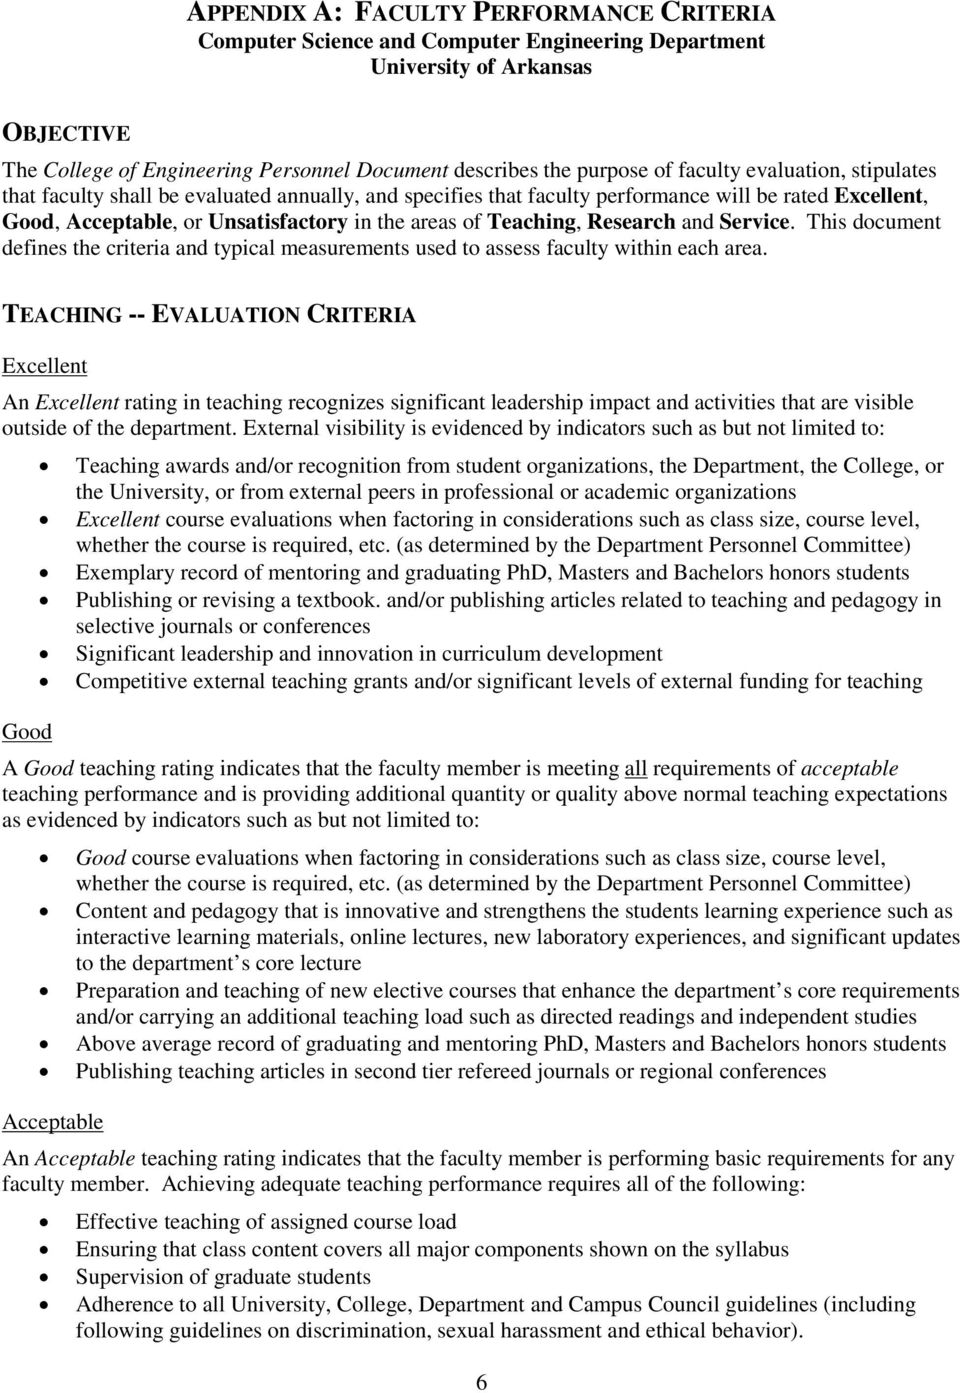 Research and Service. This document defines the criteria and typical measurements used to assess faculty within each area.